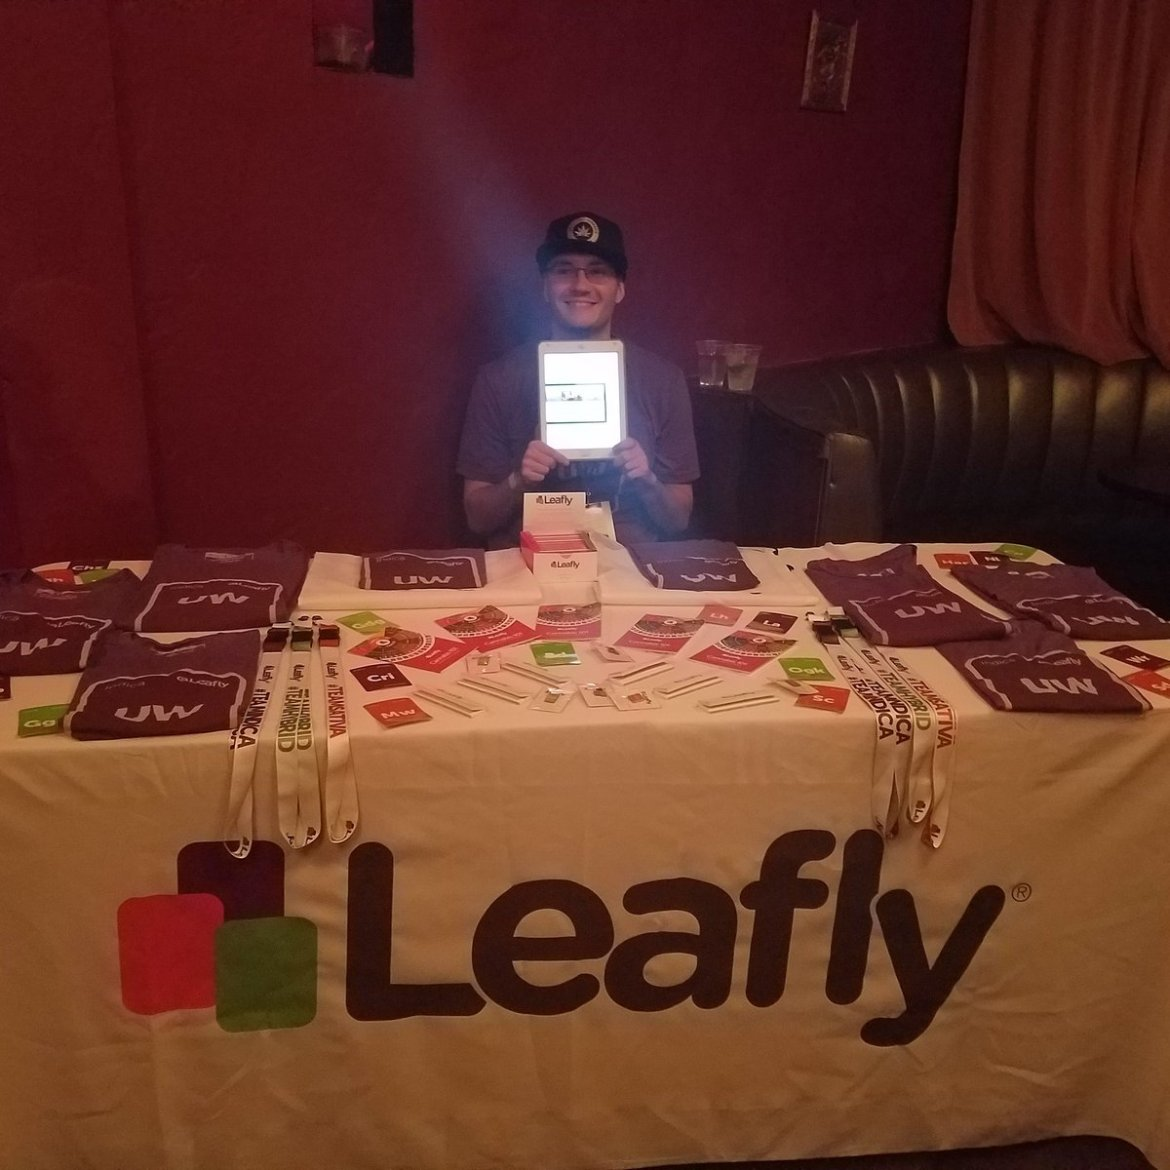 S/o to #Leafly the official Sponsor for #420fashionweek!  #weed #Cannabis